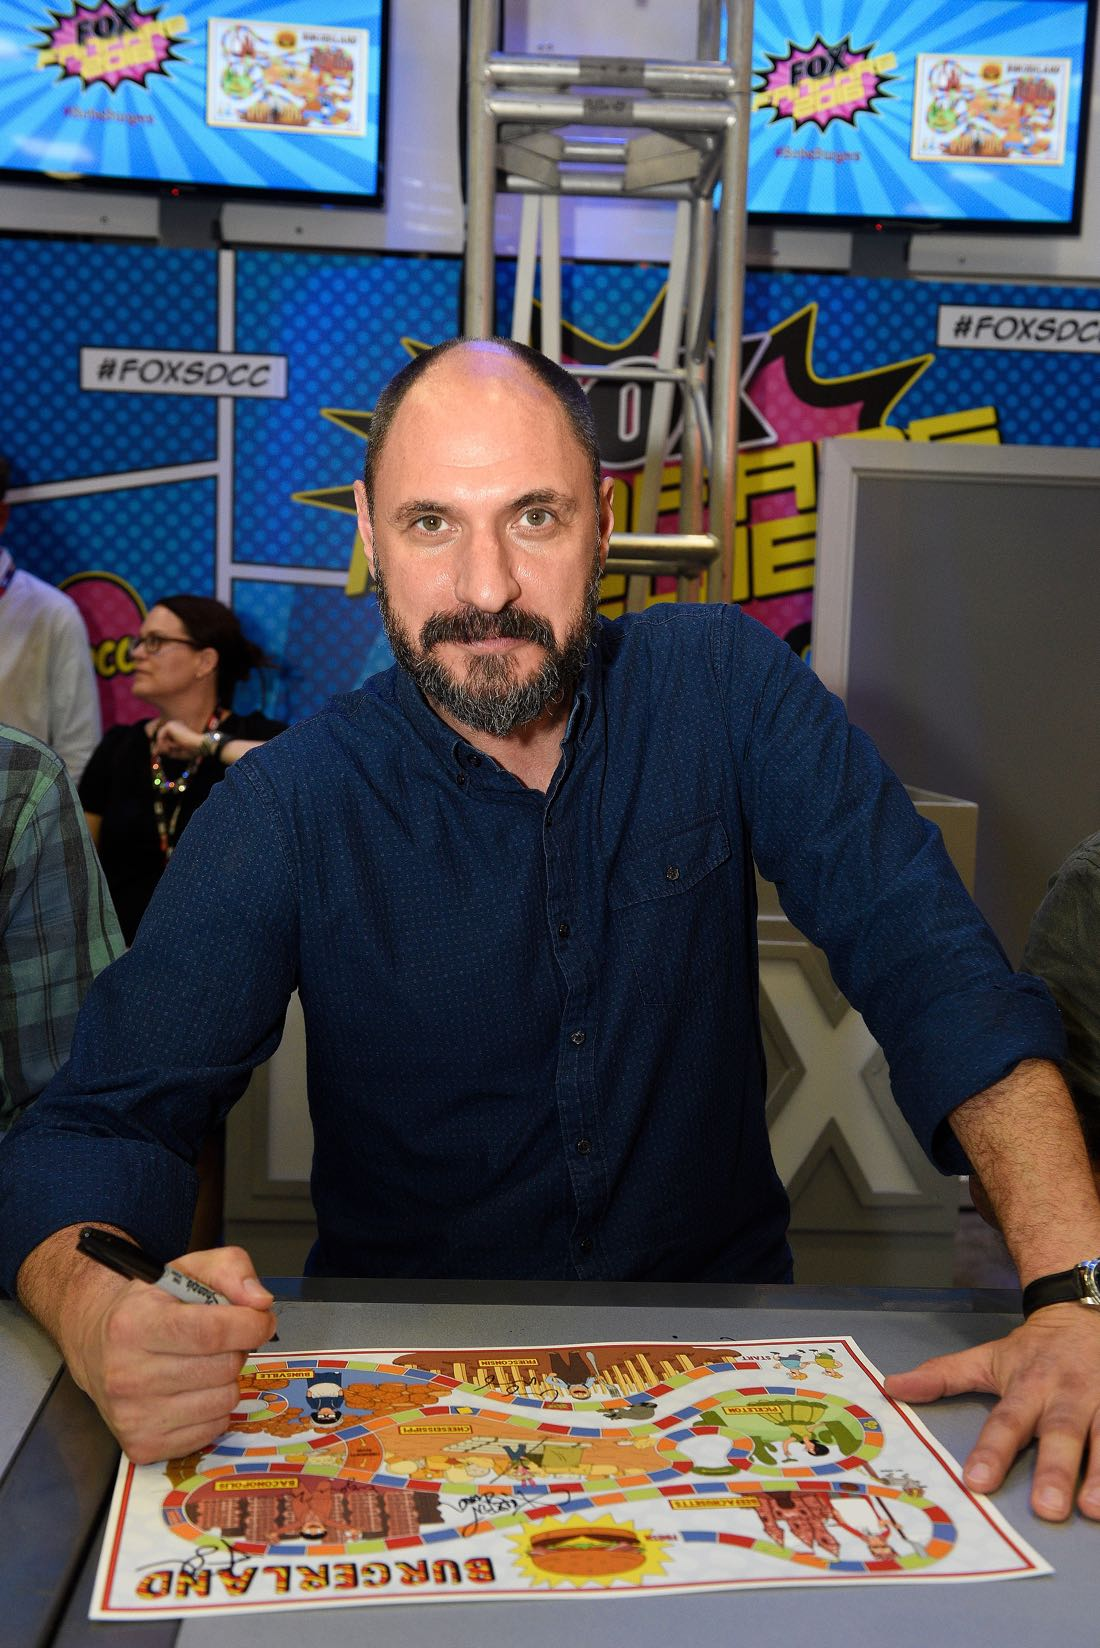 FOX FANFARE AT SAN DIEGO COMIC-CON © 2016: BOB'S BURGERS executive producer Loren Bouchard during BOB'S BURGERS booth signing on Friday, July 22 at the FOX FANFARE AT SAN DIEGO COMIC-CON © 2016. CR: Alan Hess/FOX © 2016 FOX BROADCASTING